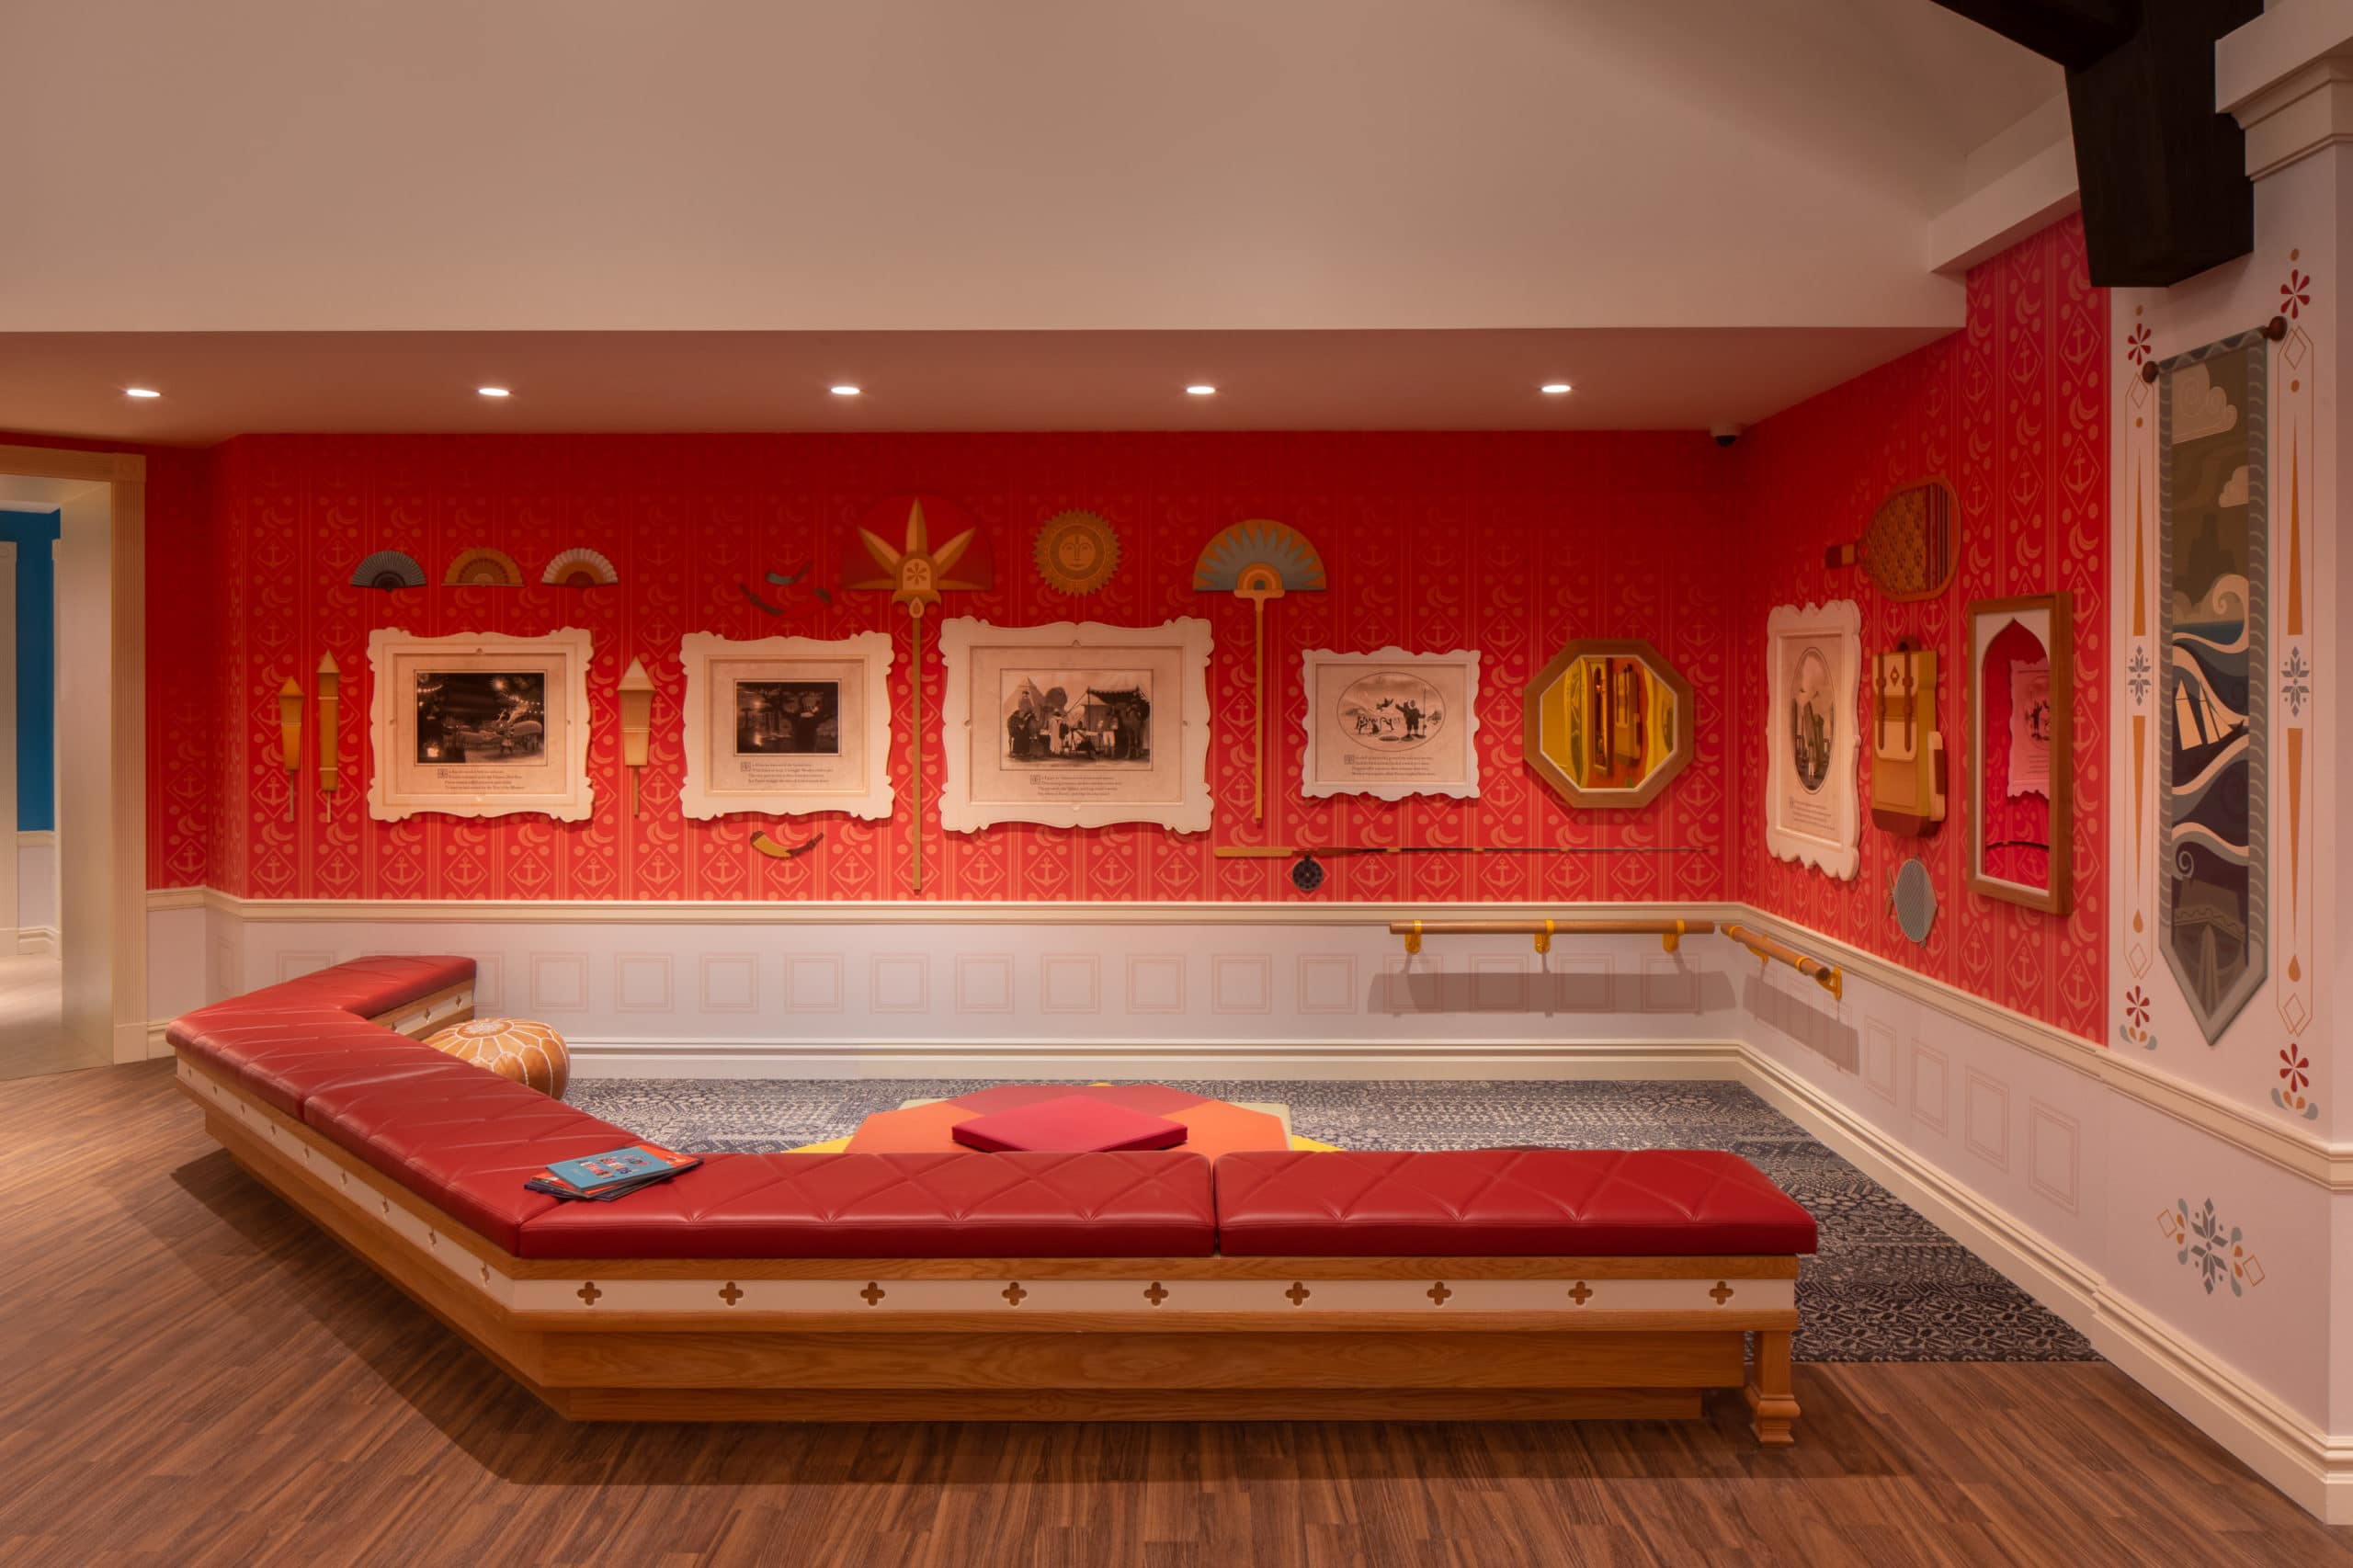 Seating area in the playroom at Waterline Square in NYC. Long crescent shaped red bench, red and white walls with paintings.